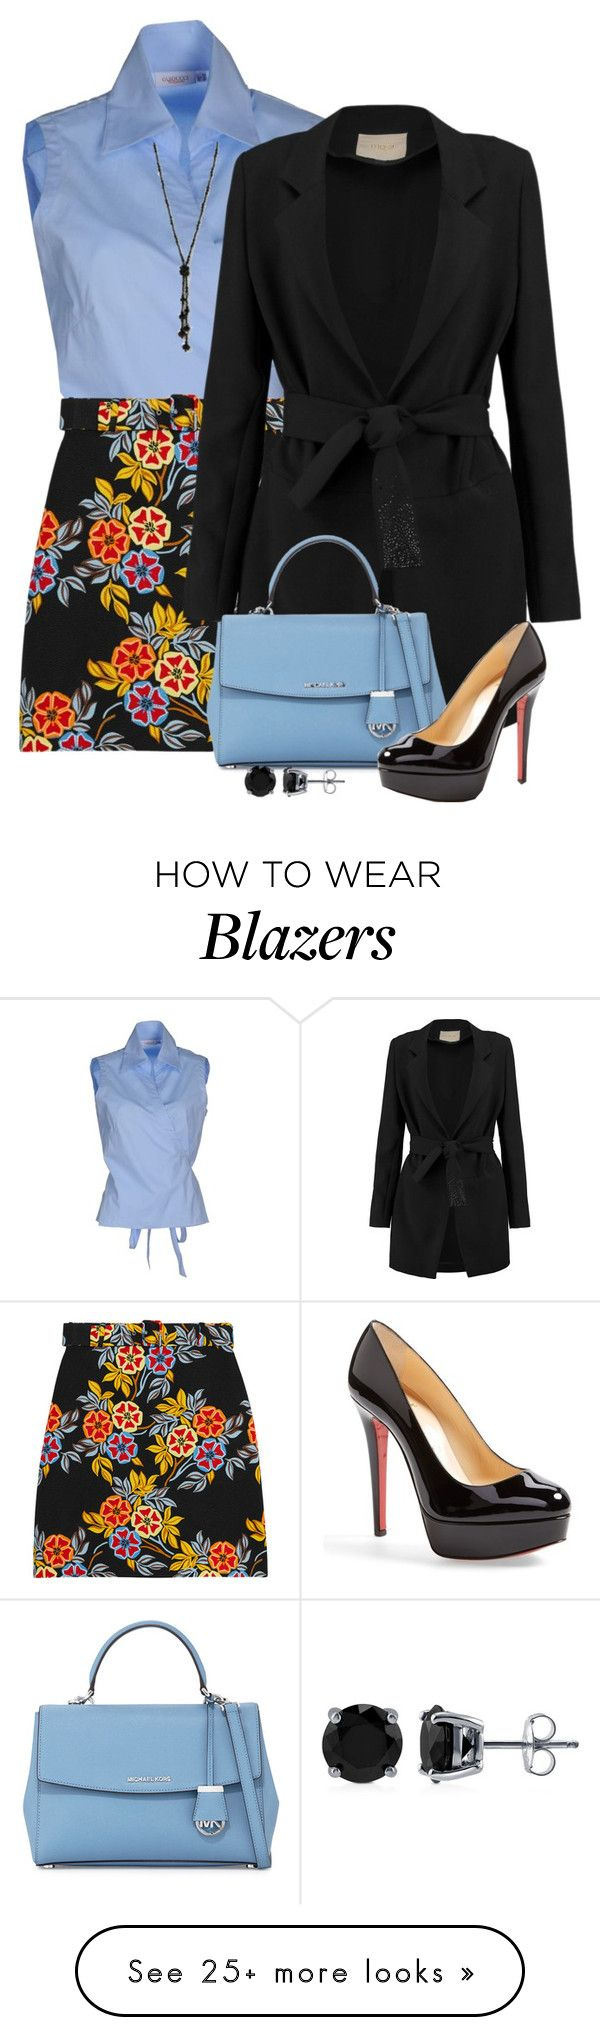 """Floral Skirt"" by derniers on Polyvore featuring MSGM, Maje, MICHAEL Michael Kors, Christian Louboutin and BERRICLE"